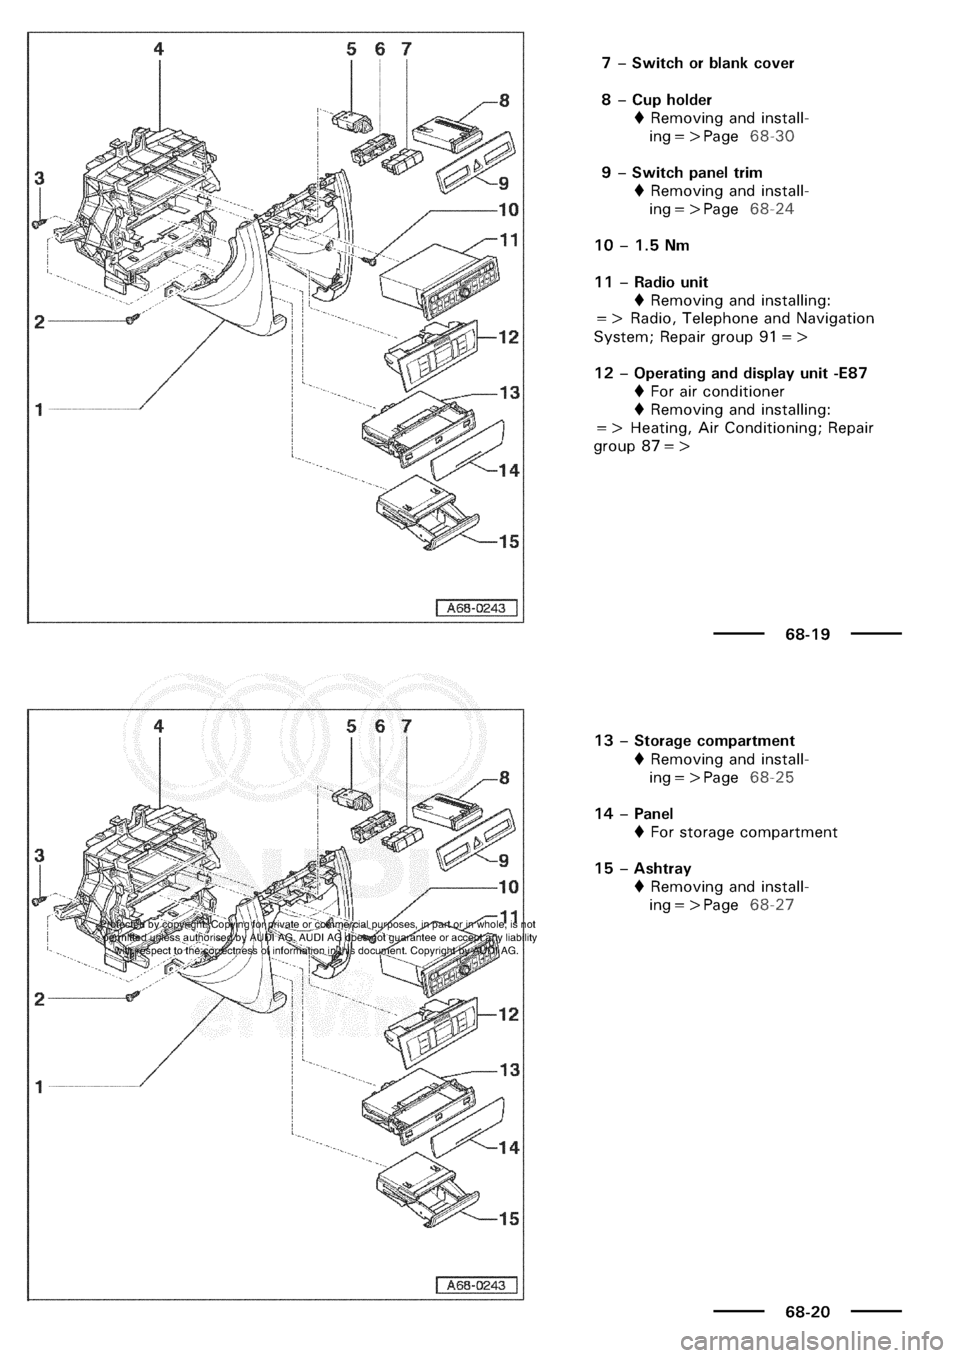 Mitsubishi Chariot Wiring Diagram Great Design Of 2001 Galant Radio Service Manual 1985 Transmission Eclipse